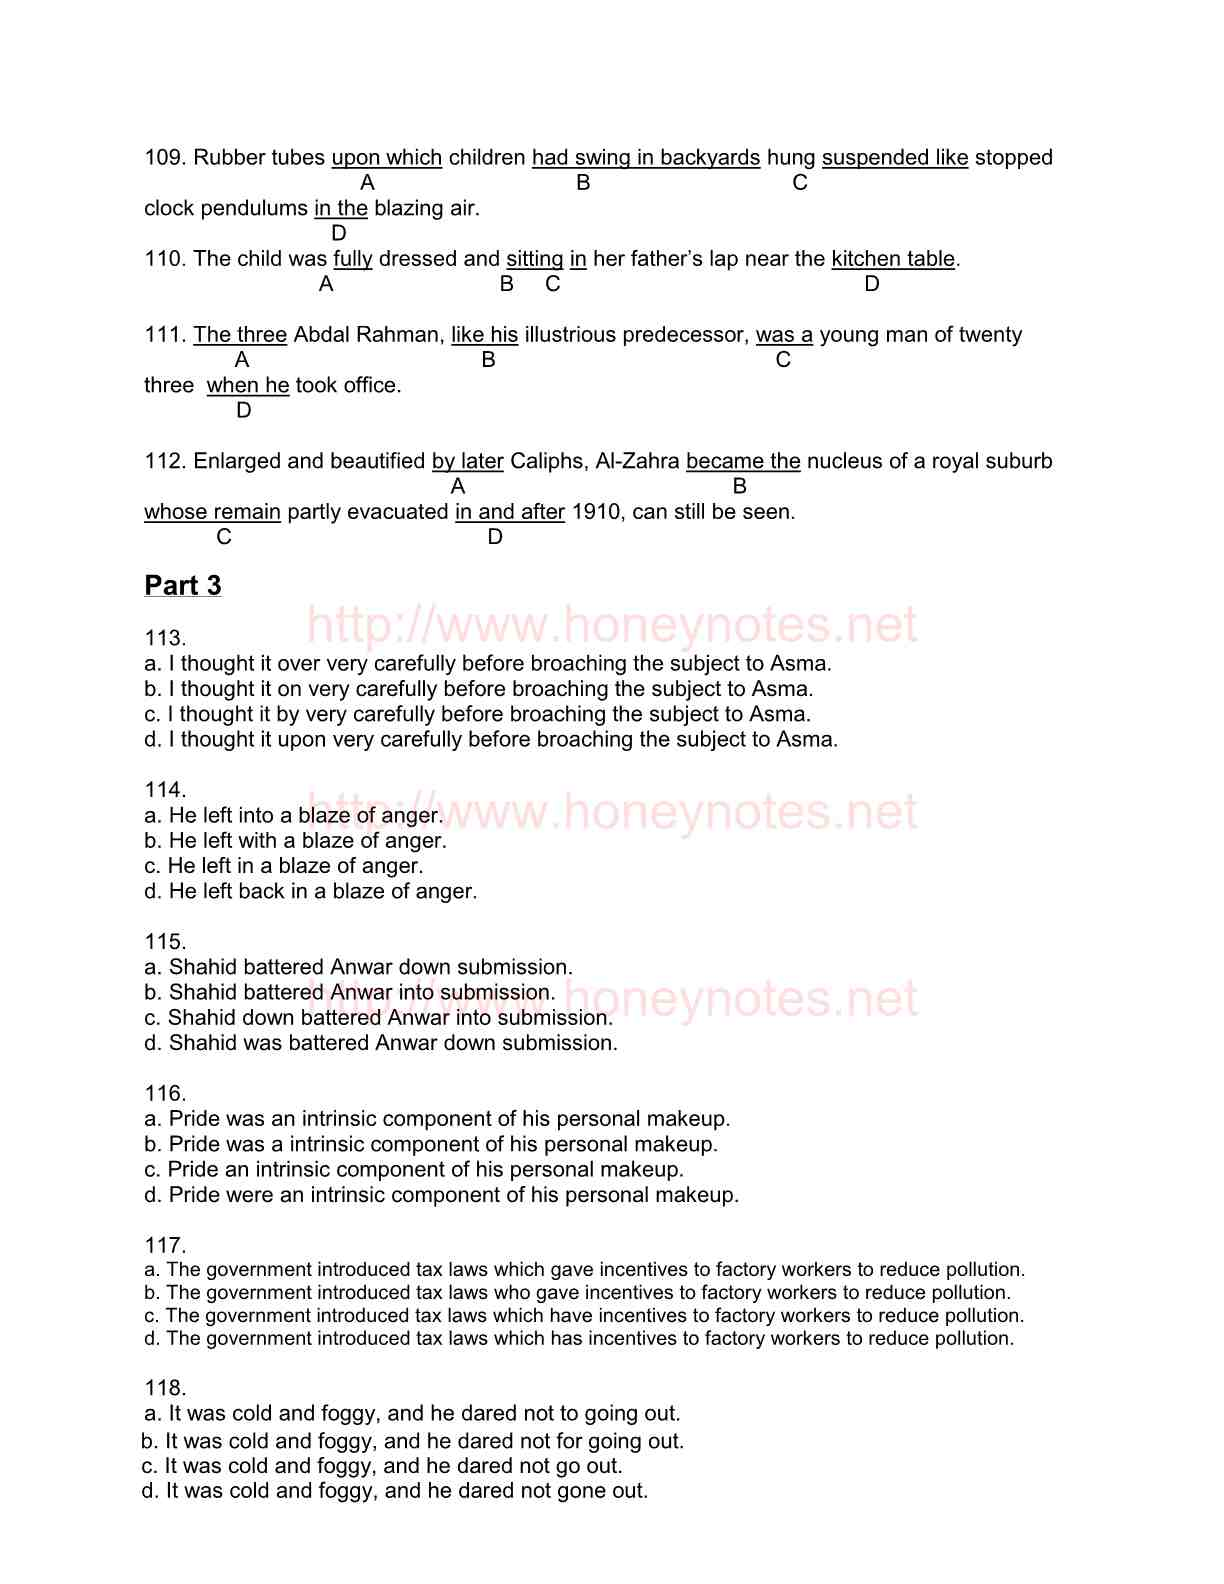 Entry test mcqs for medical, Physics entry test mcqs for engineering, entry test mcqs for medical 2014, Physics entry test papers, mcat Physics mcqs pdf, mcat mcqs of Physics 2014, mcat mcqs chapter wise (Physics), mcat mcqs 2014, entry test mcqs of Physics, entry test mcqs Physics 2014, entry test mcqs for engineering 2014, entry test mcqs for medical 2014, entry test mcqs for medical past papers, biology mcqs for entry test with answers, mcat mcqs biology with answers, mcat mcqs Physics, mcat Physics mcqs online test, mcat mcqs Physics, entry test mcqs for medical 2014, online entry test preparation mcat.